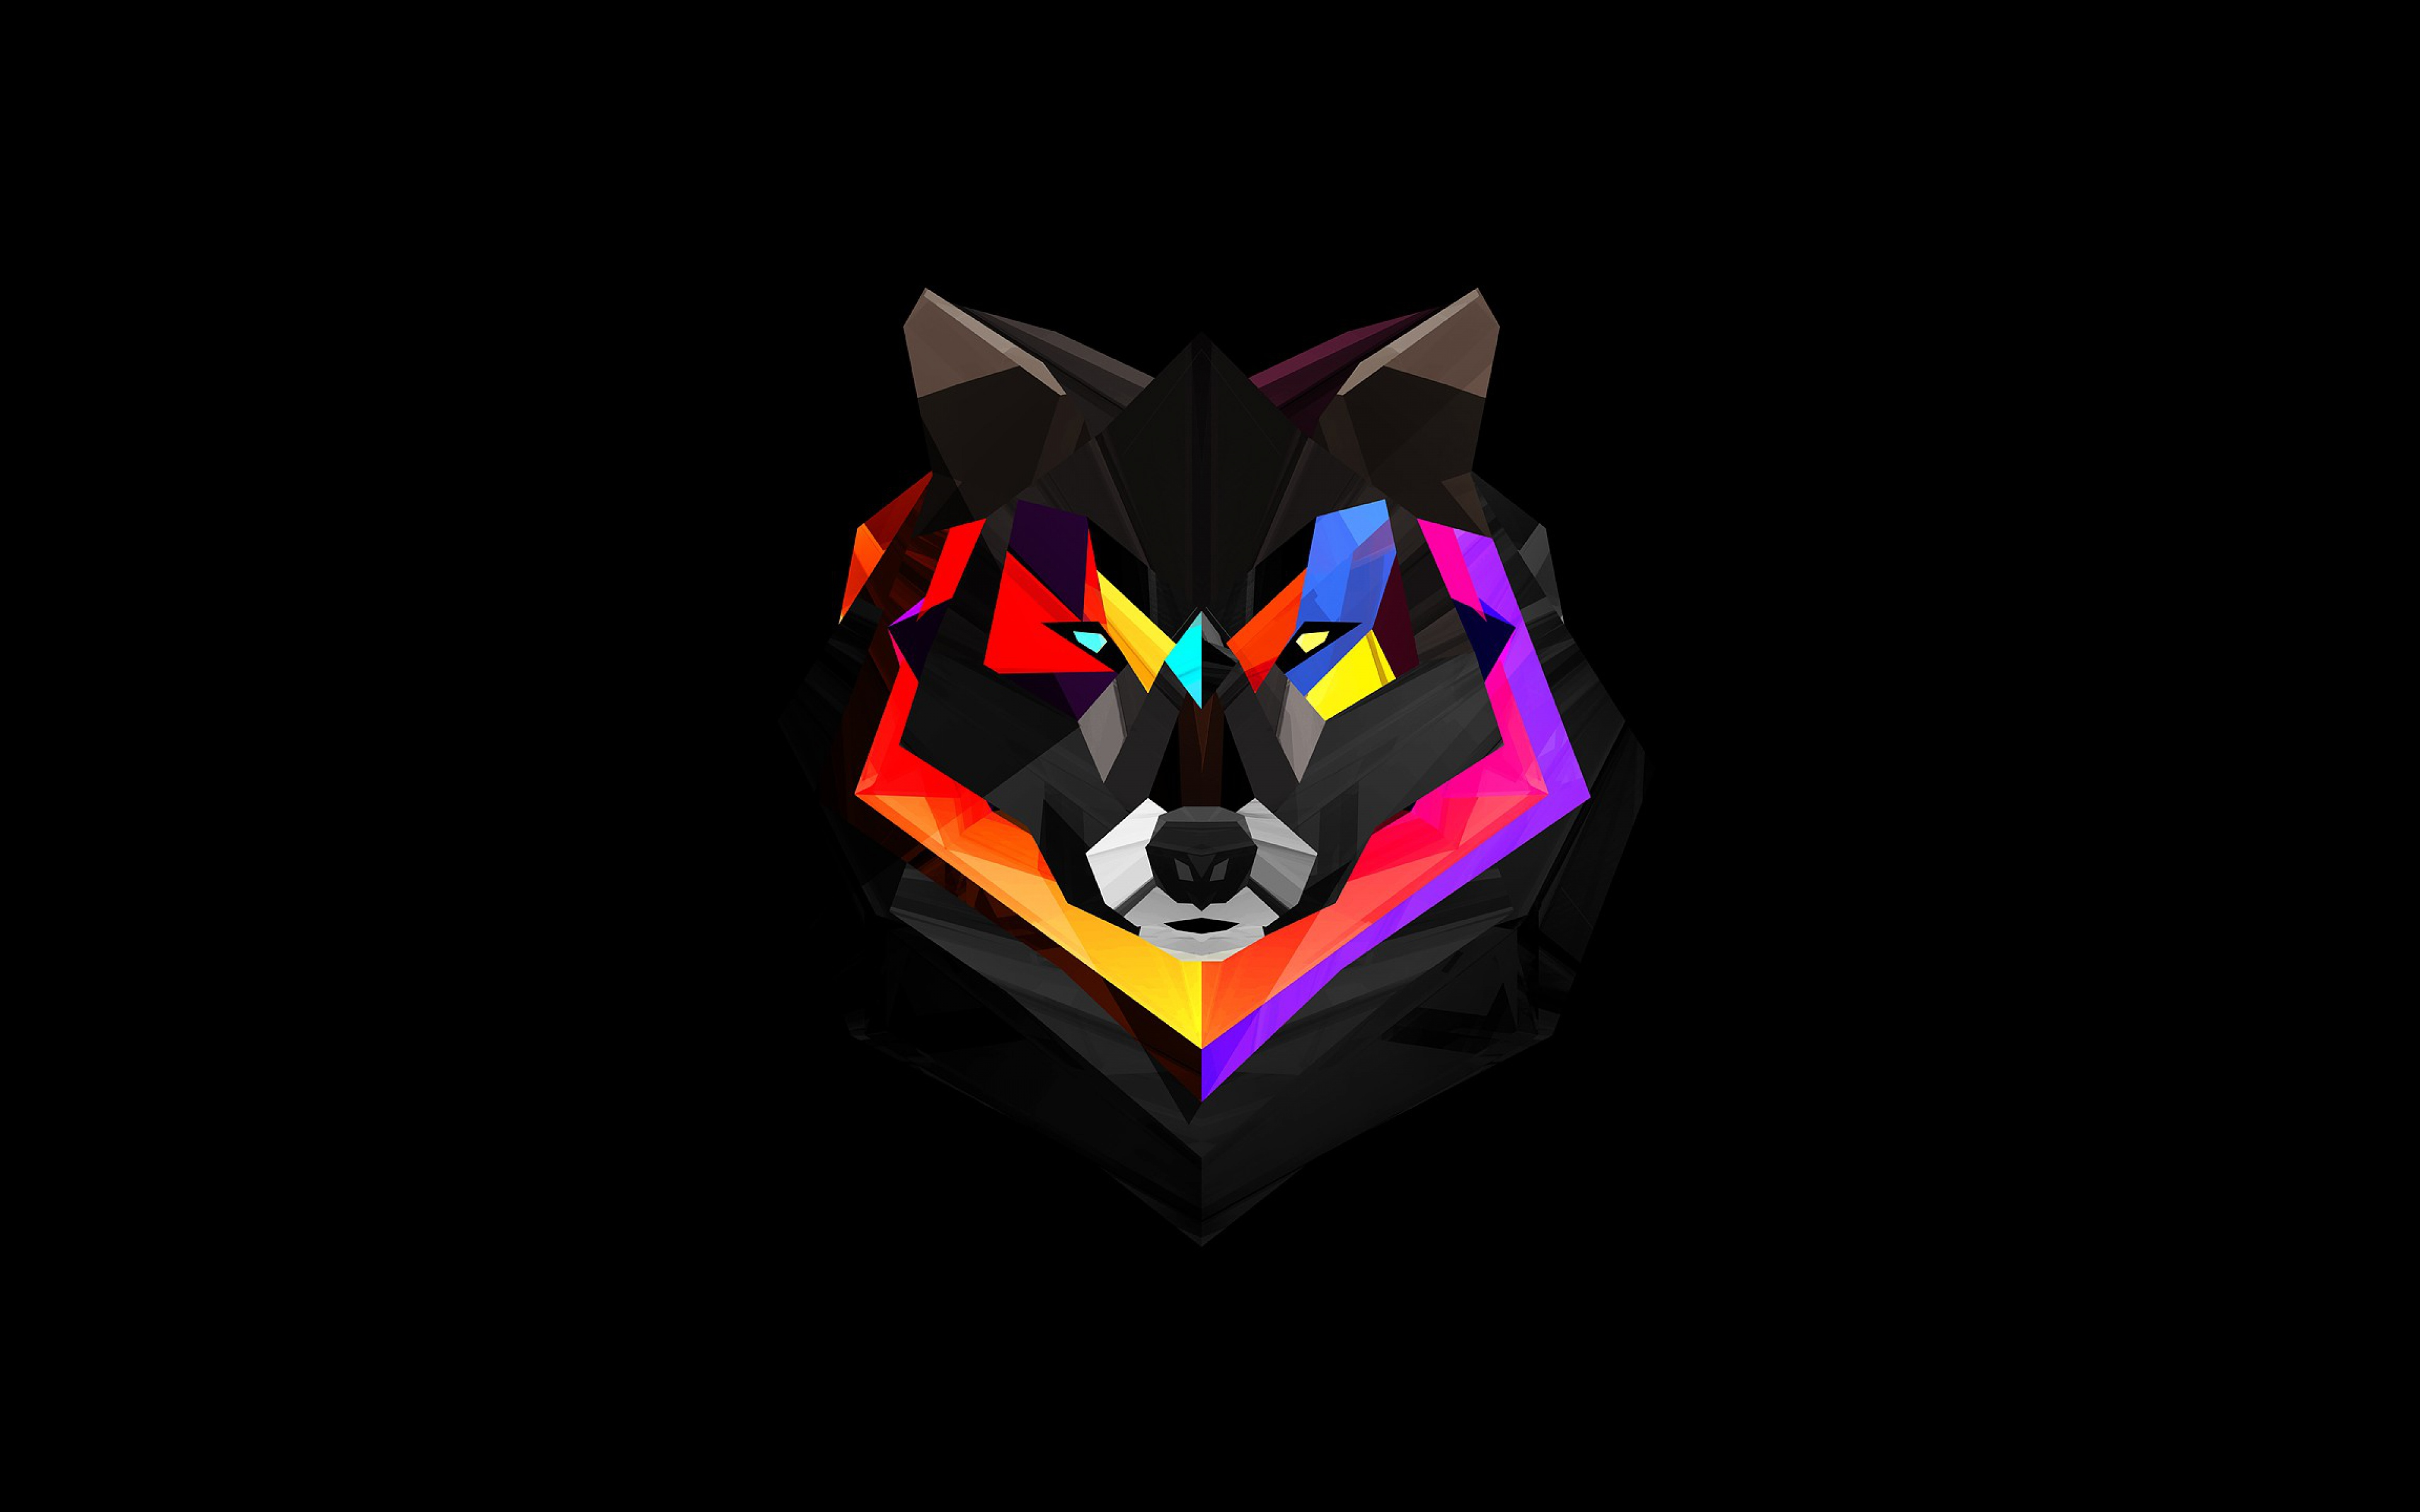 Wallpaper 3840x2400 wolf face abstract colorful Ultra HD 4K 3840x2400